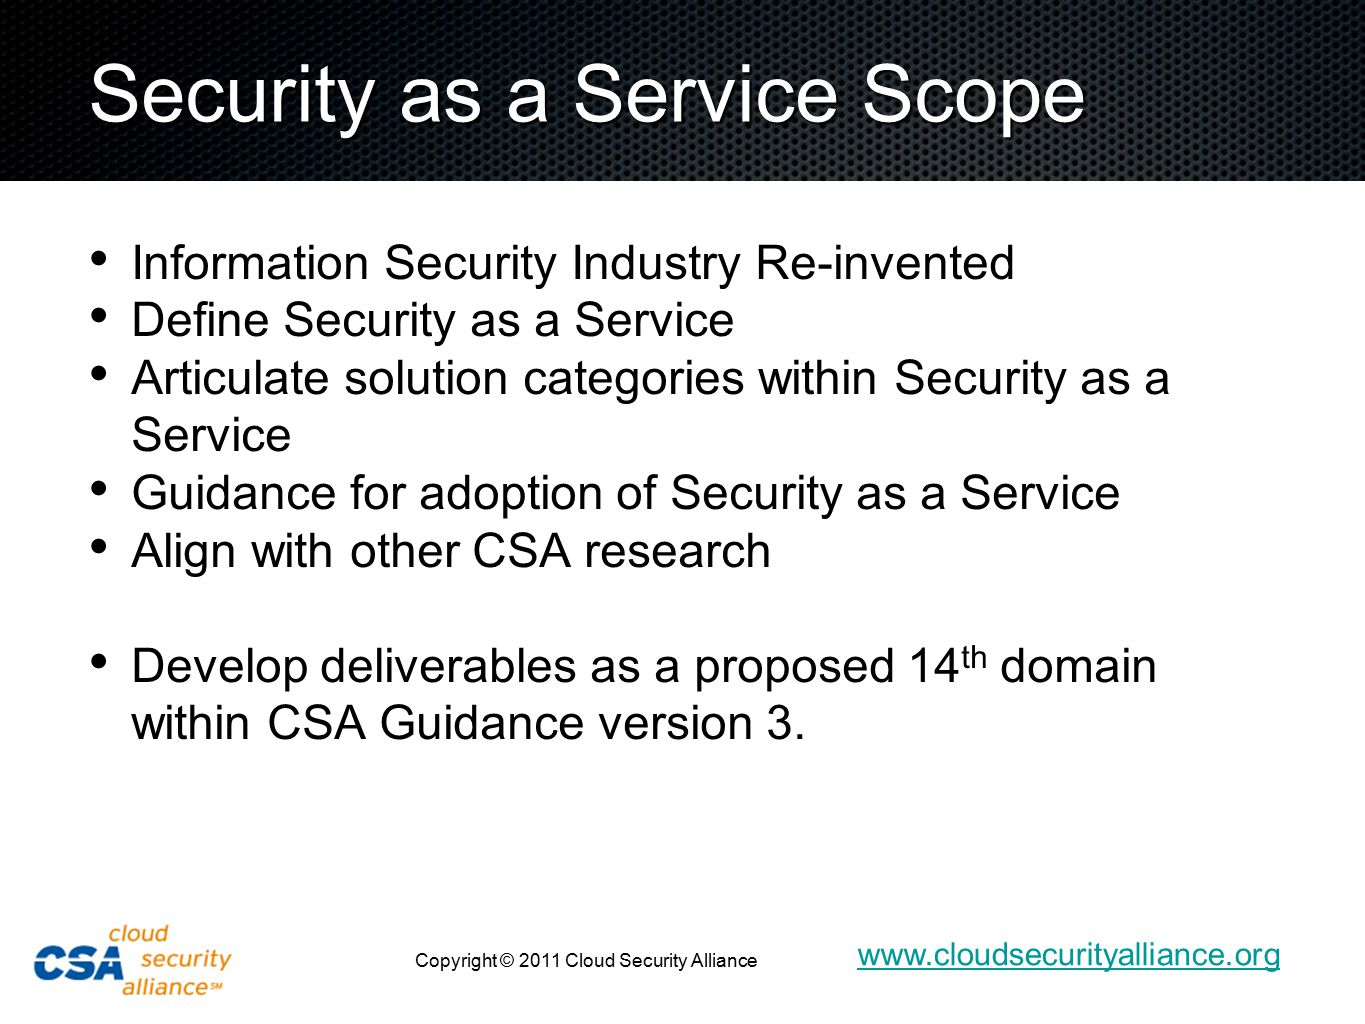 www.cloudsecurityalliance.org Copyright © 2011 Cloud Security Alliance Security as a Service Scope Information Security Industry Re-invented Define Security as a Service Articulate solution categories within Security as a Service Guidance for adoption of Security as a Service Align with other CSA research Develop deliverables as a proposed 14 th domain within CSA Guidance version 3.